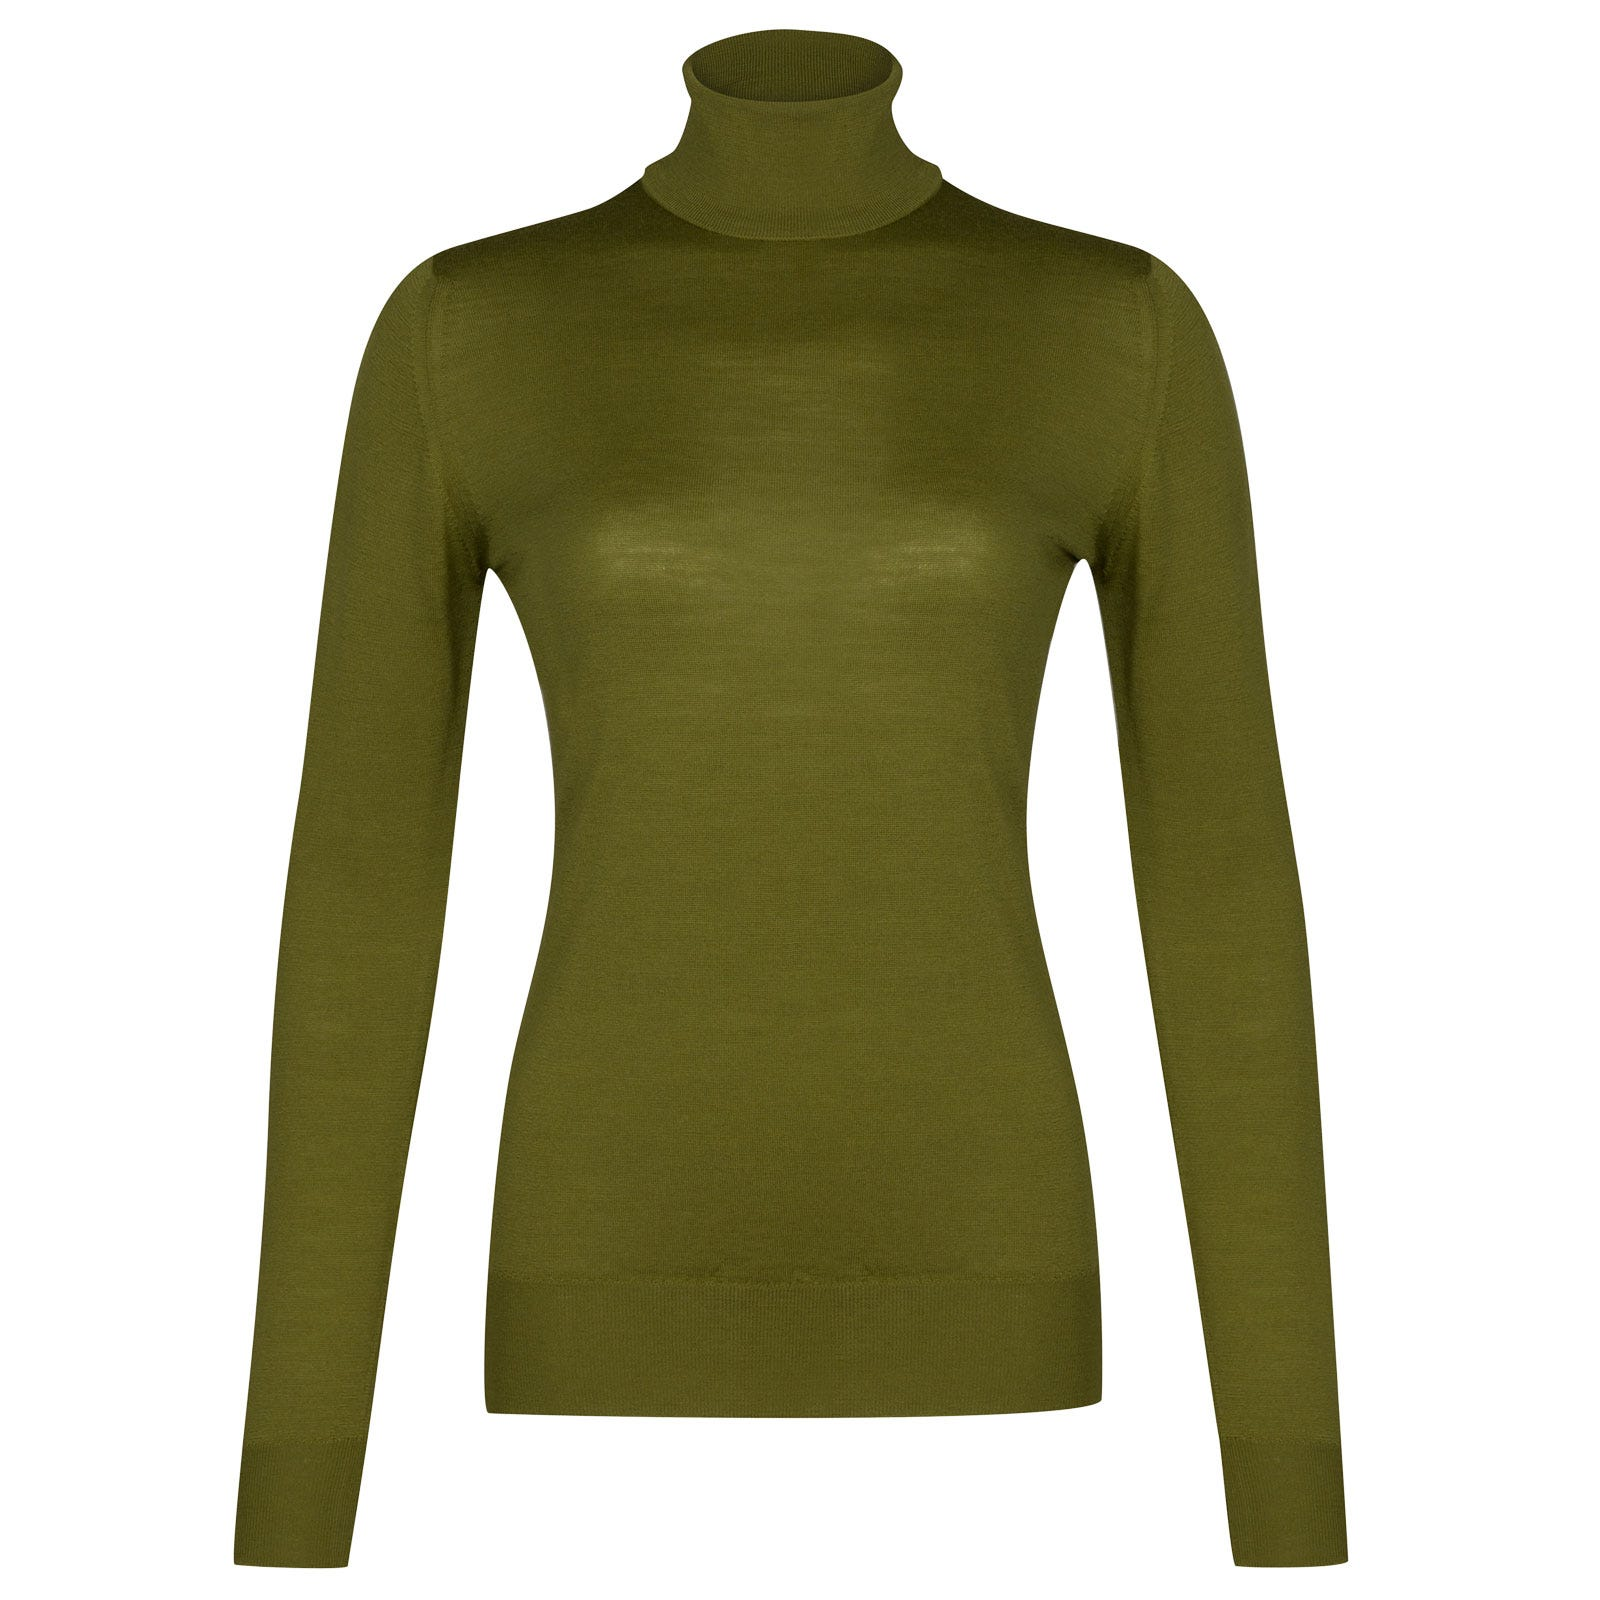 John Smedley Catkin Merino Wool Sweater in Lumsdale Green-XL